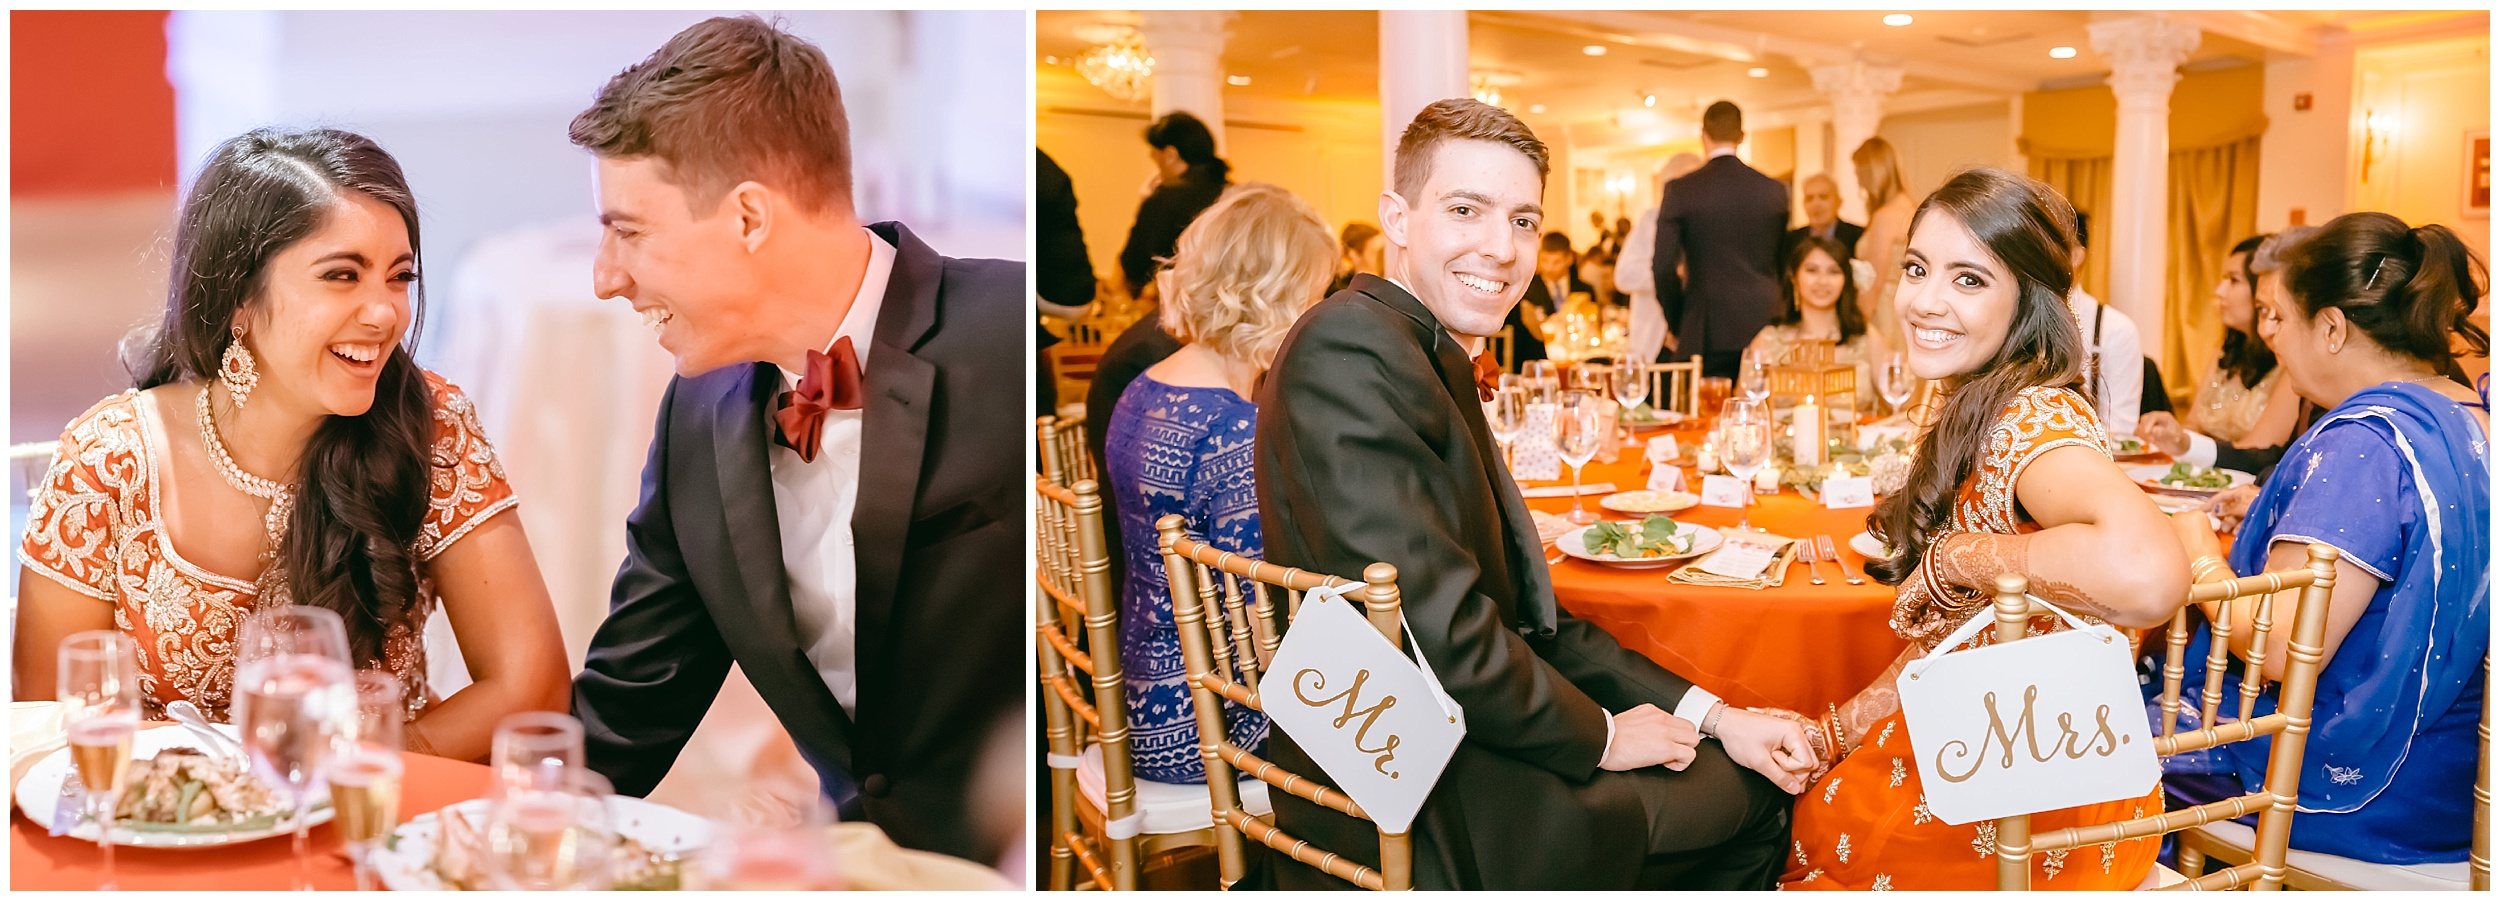 reception just married bride groom toasts Whittemore House wedding Washington DC